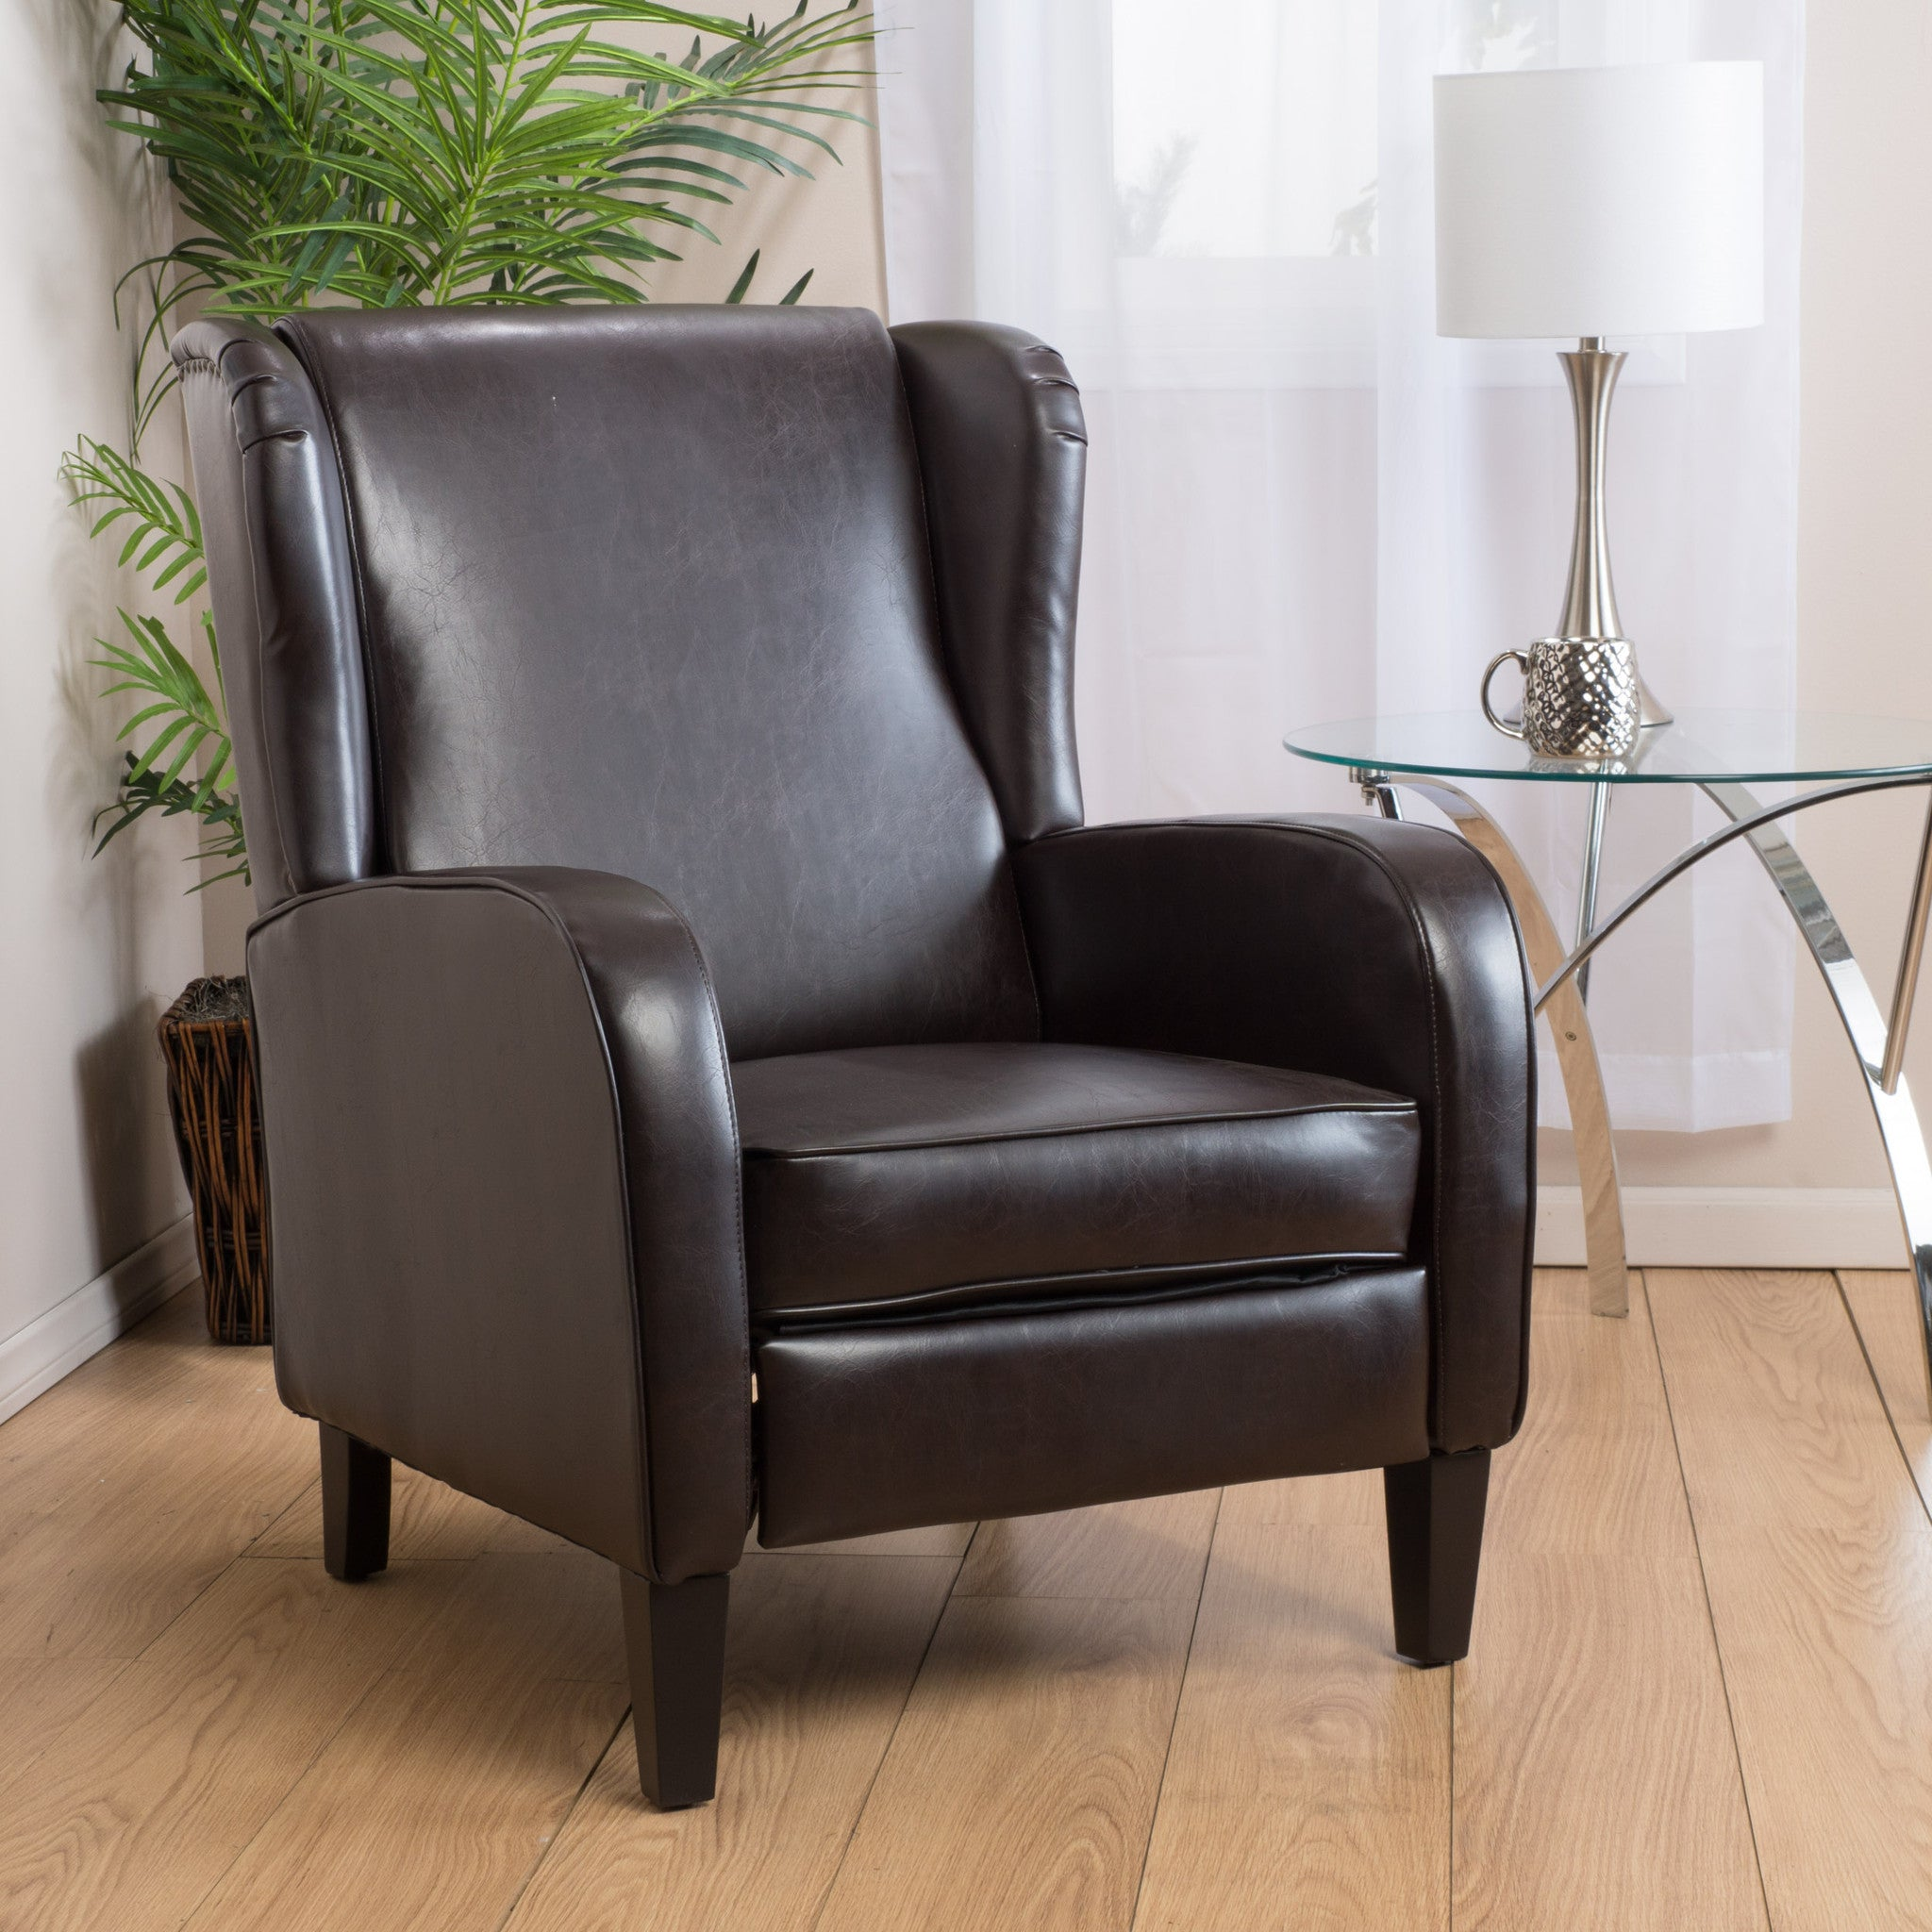 Leather Bedroom Chair Hadley Espresso Leather Wingback Club Chair Recliner Great Deal